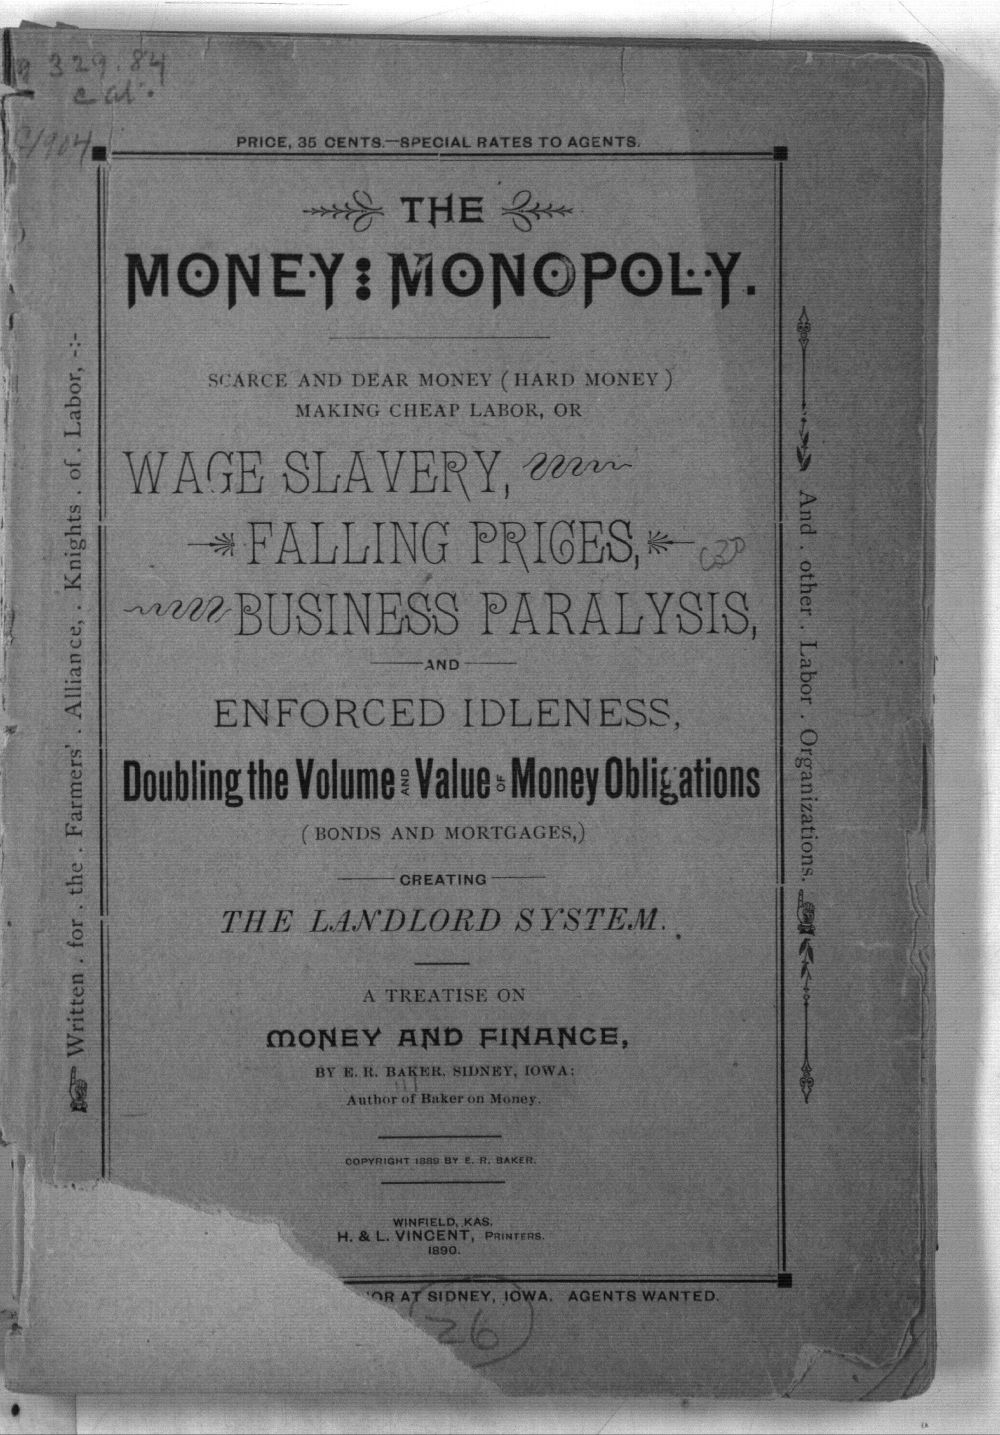 The money monopoly.  Scarce and dear money (hard money) making cheap labor, or wage slavery, falling prices business paralysis, and enforced idleness. - Front Cover